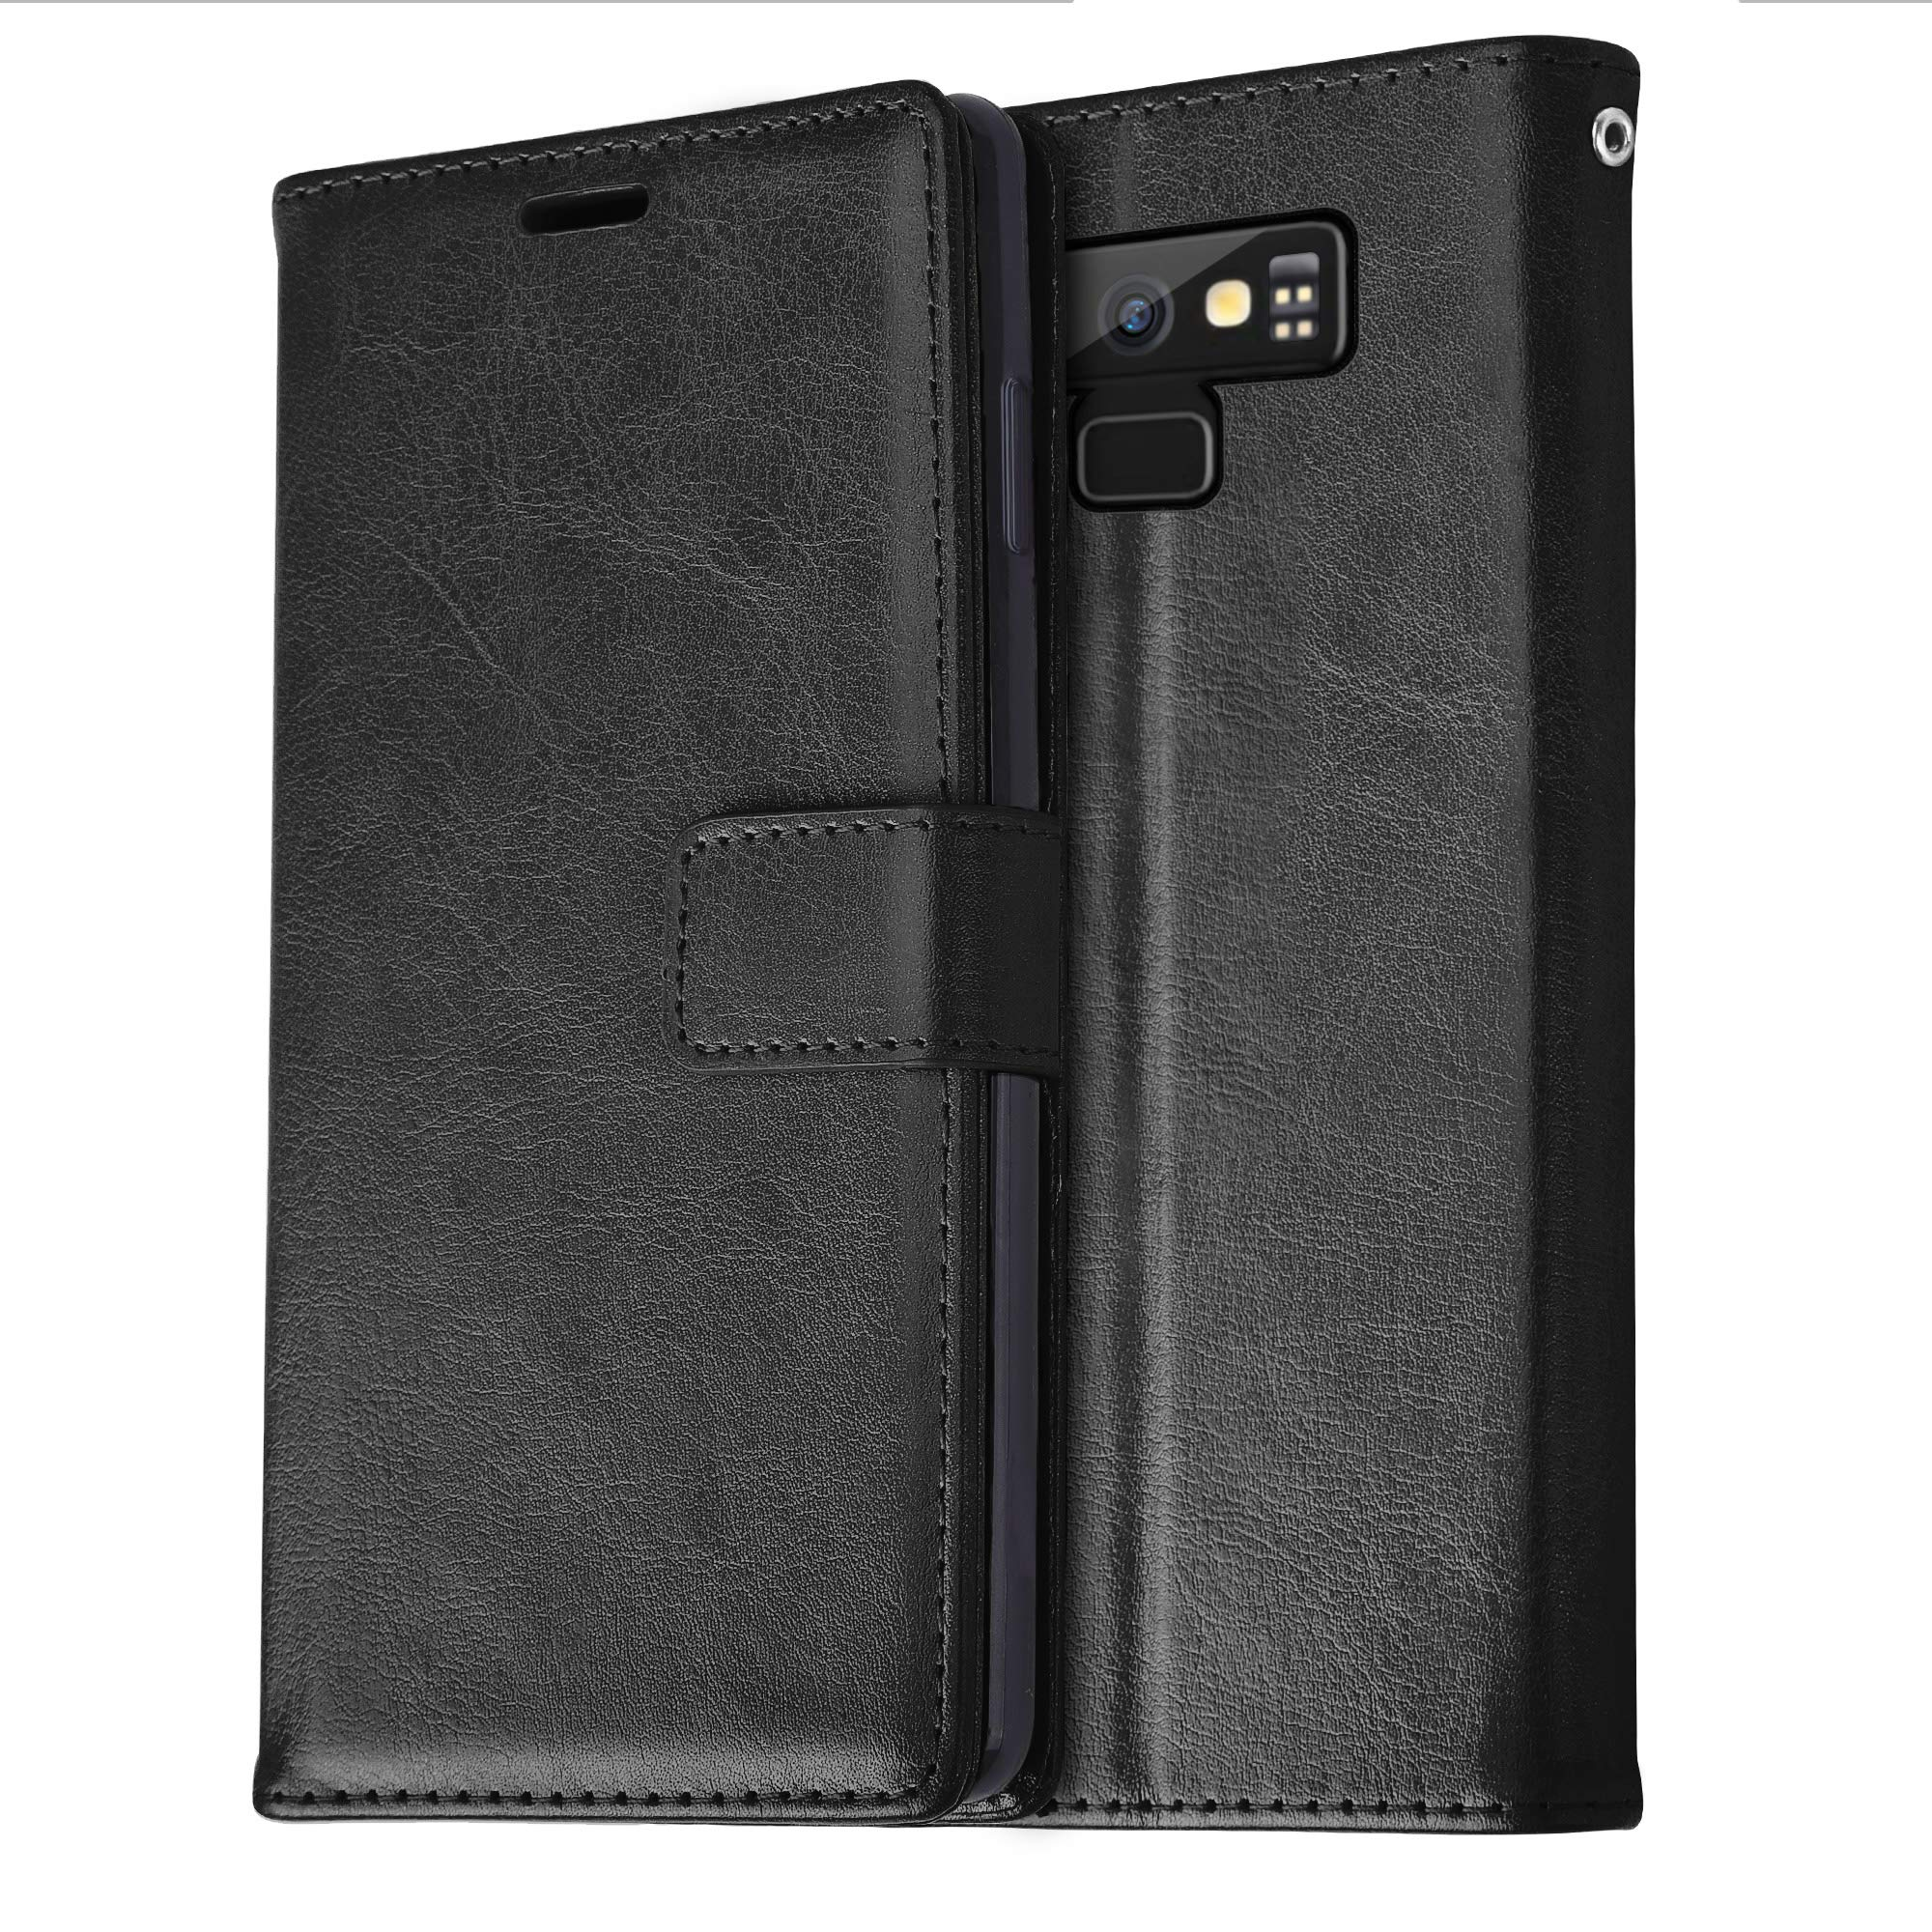 Samsung Galaxy Note 9 Case Leather Wallet Card Slot Holder Genuine Flip Cover (Black, Galaxy Note 9)